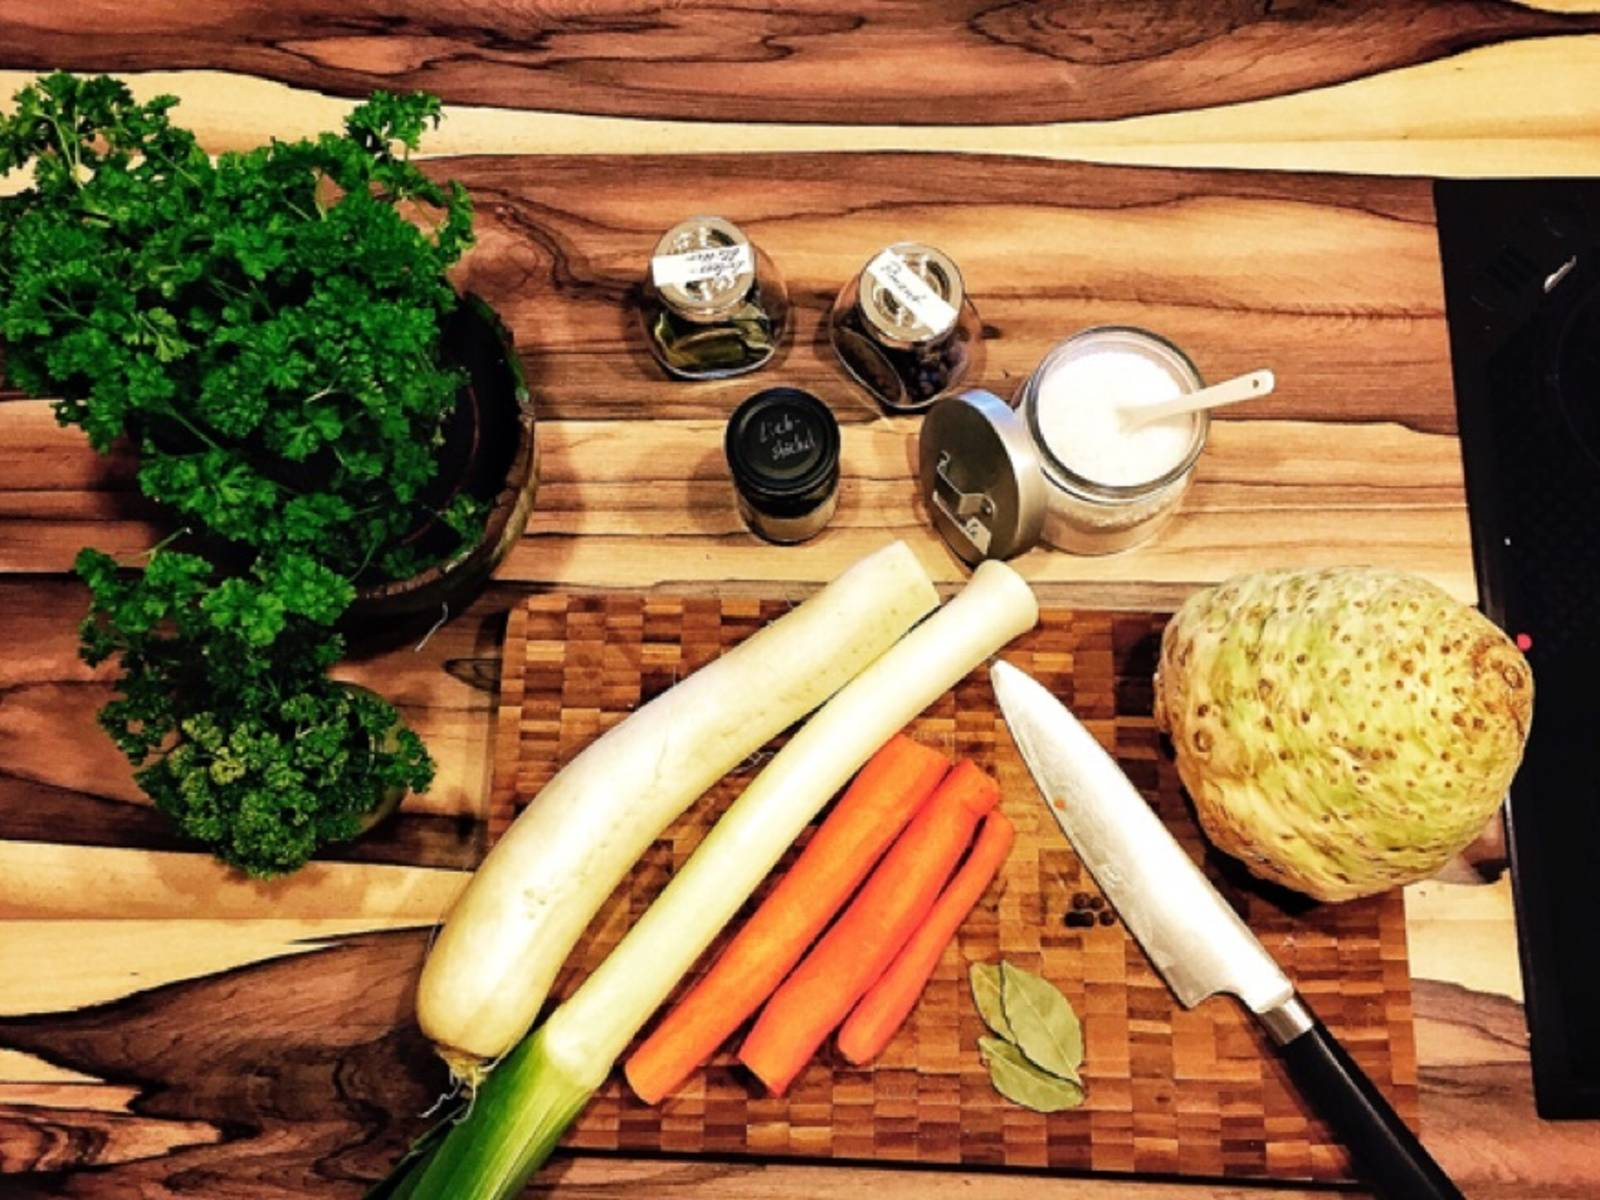 Roughly chop carrots, celery root and stalk, leek, and radish.